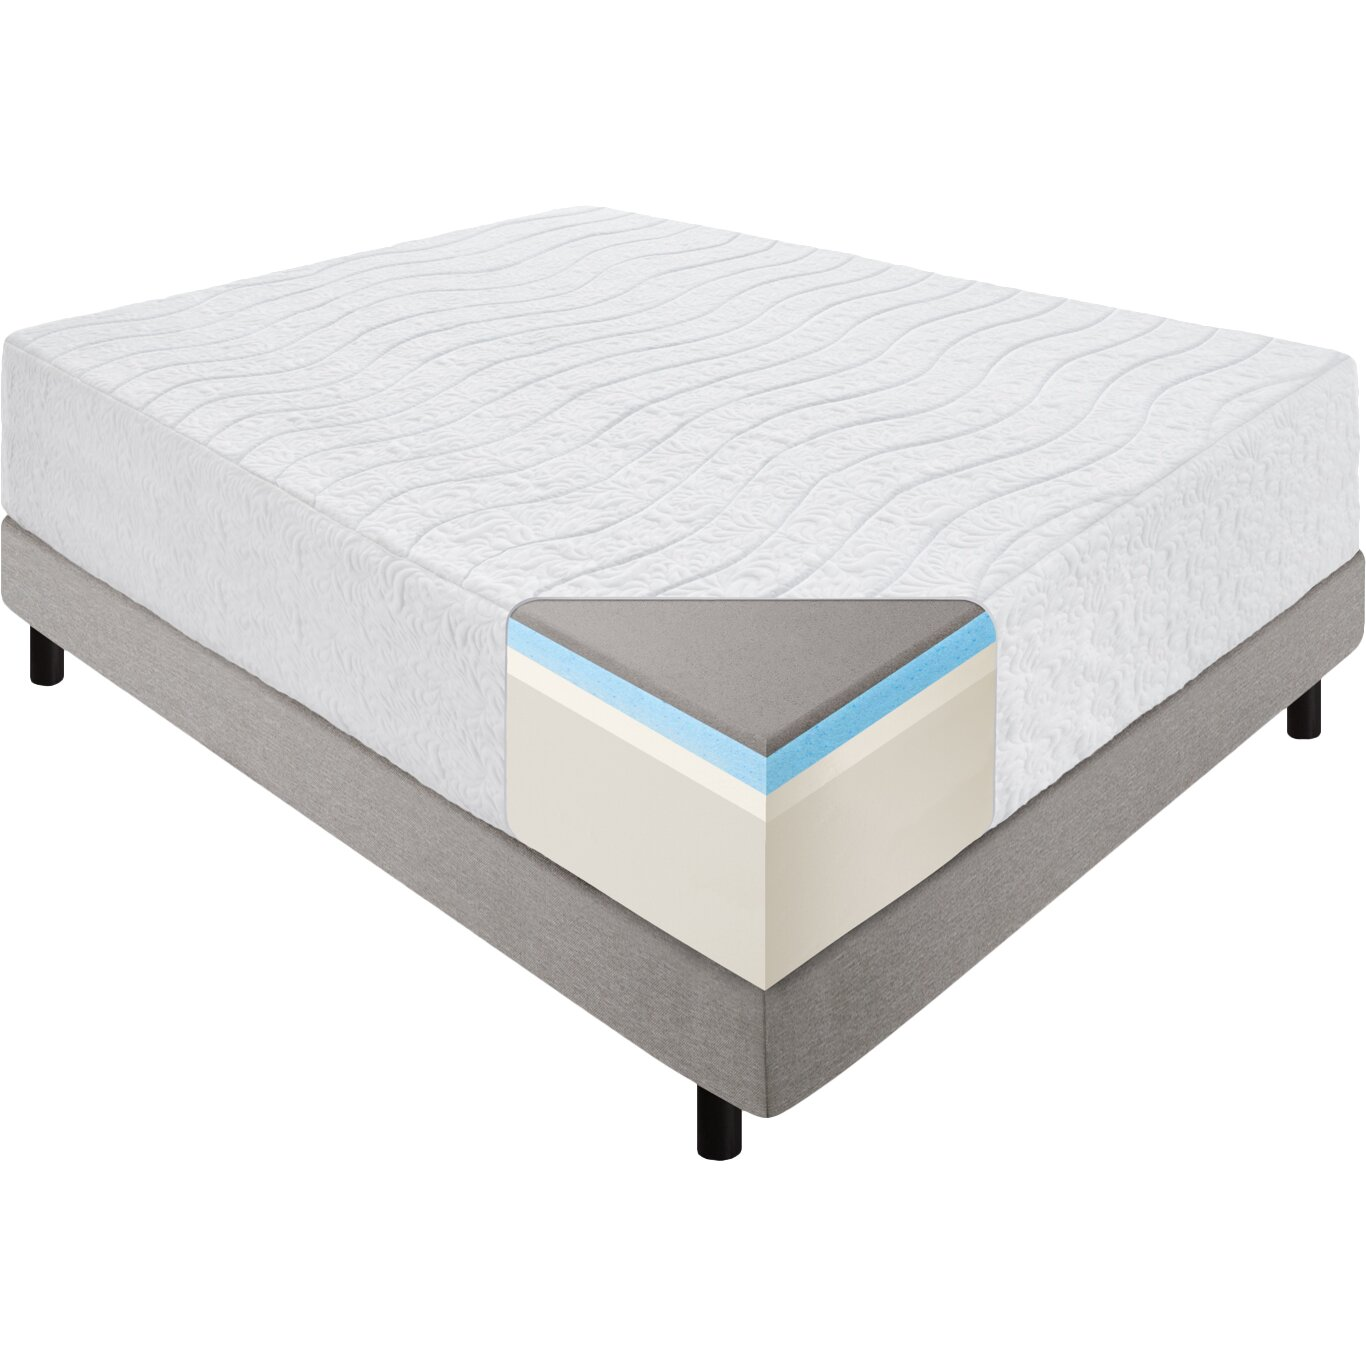 "16"" Latex and Memory Foam Mattress"